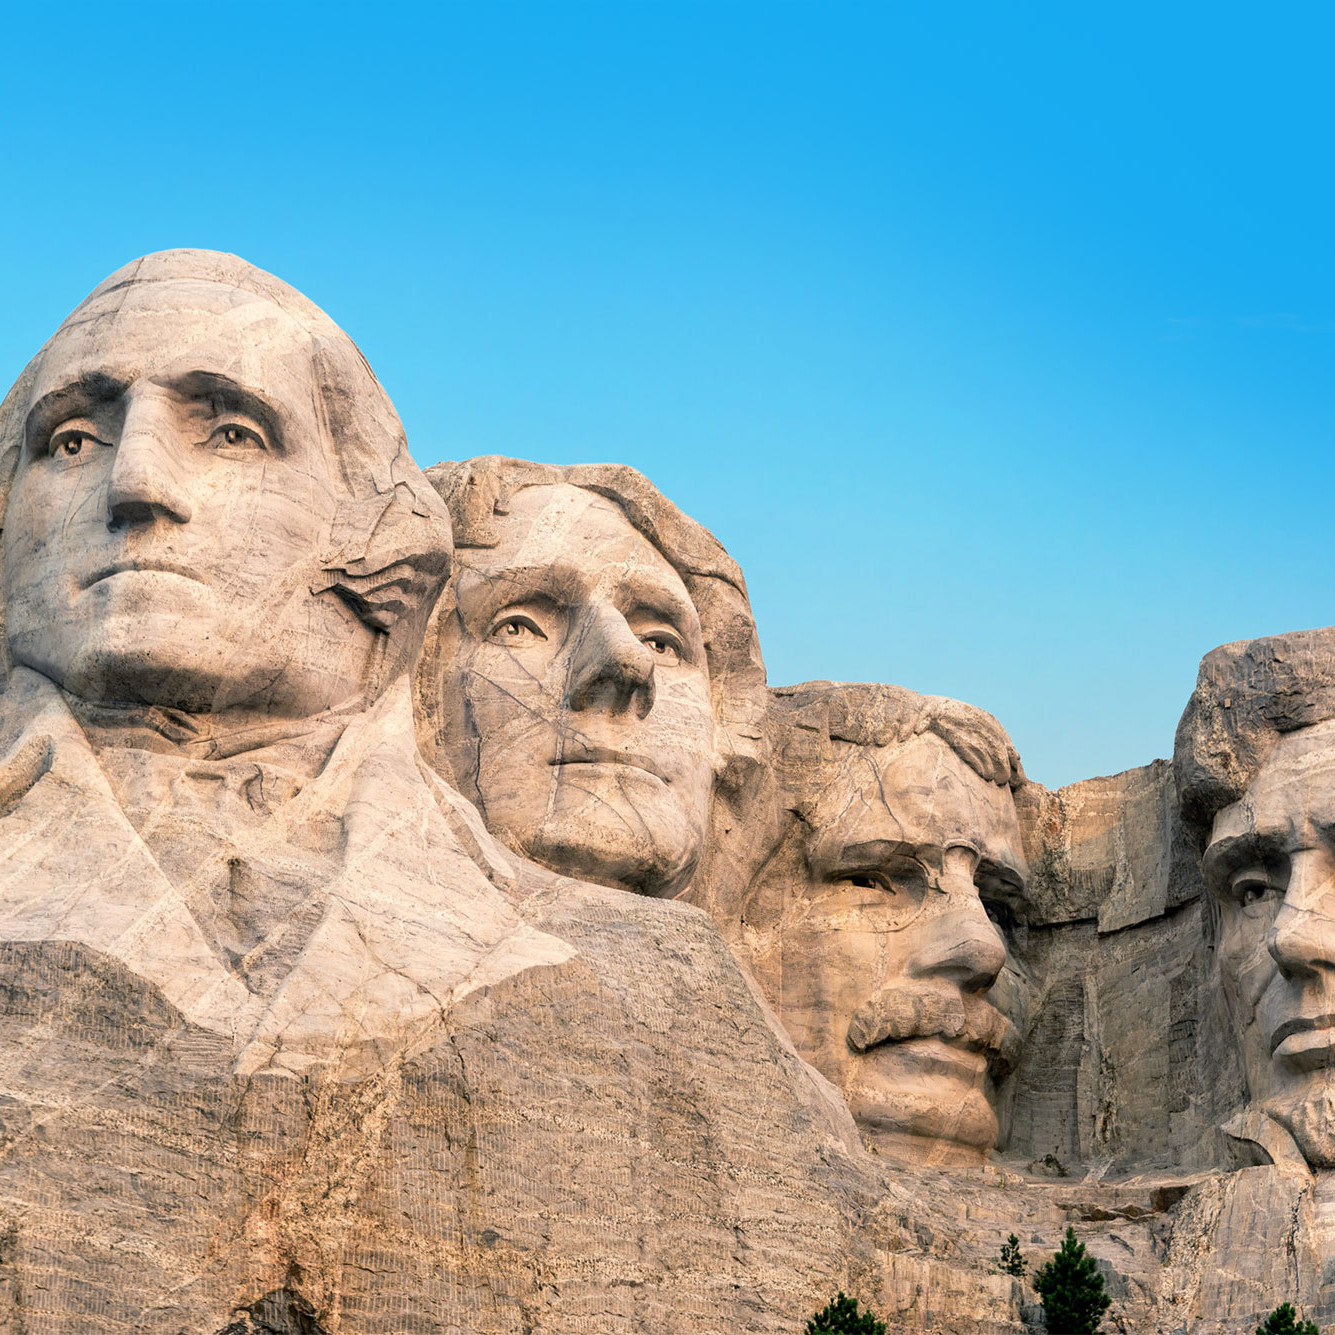 Mount Rushmore USA North America Travel Guide